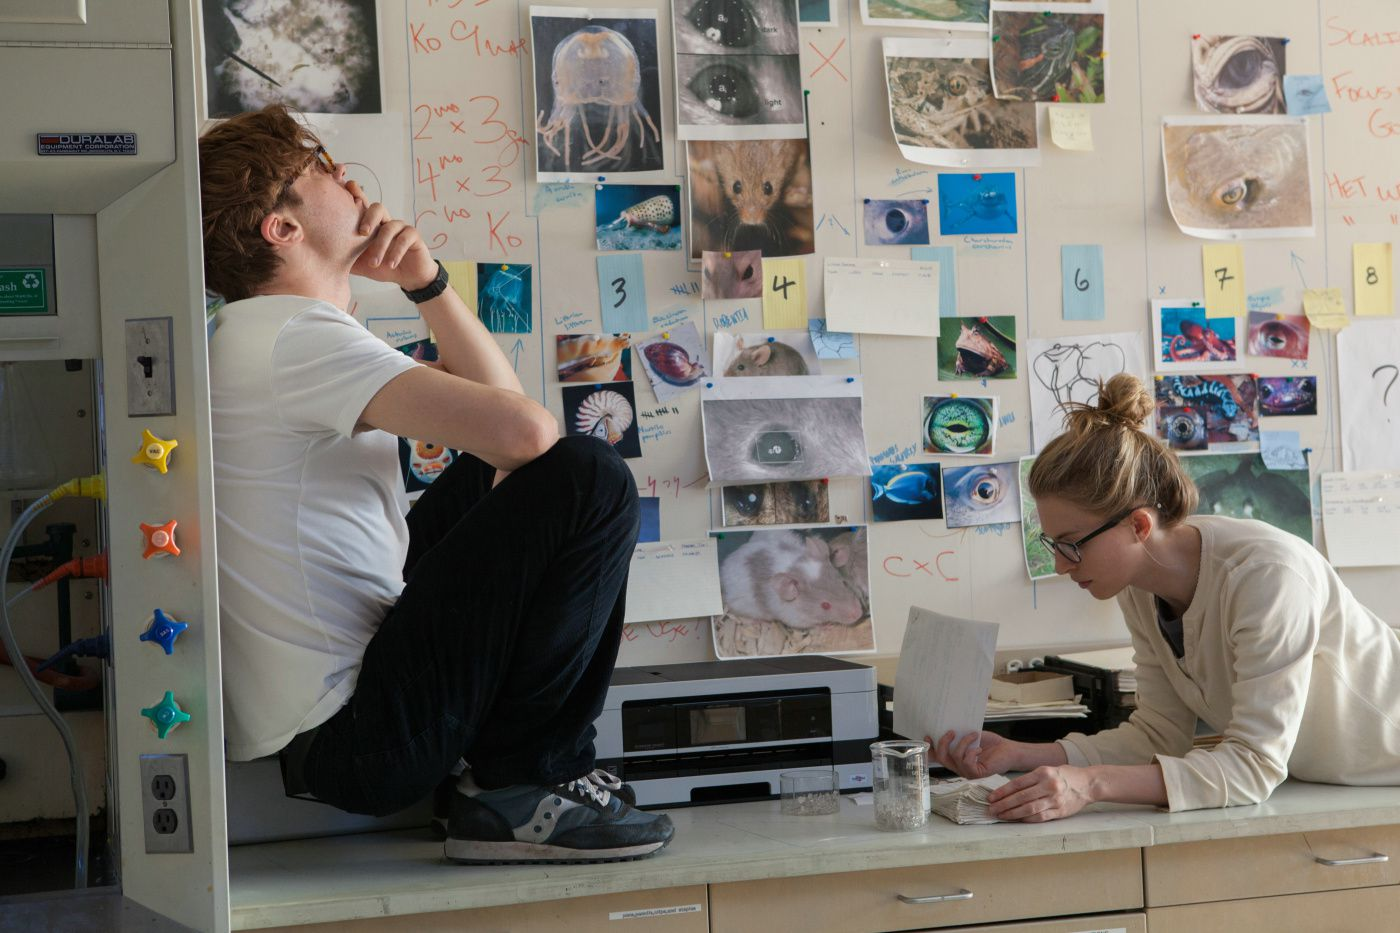 [critique] I Origins : entre science & religion